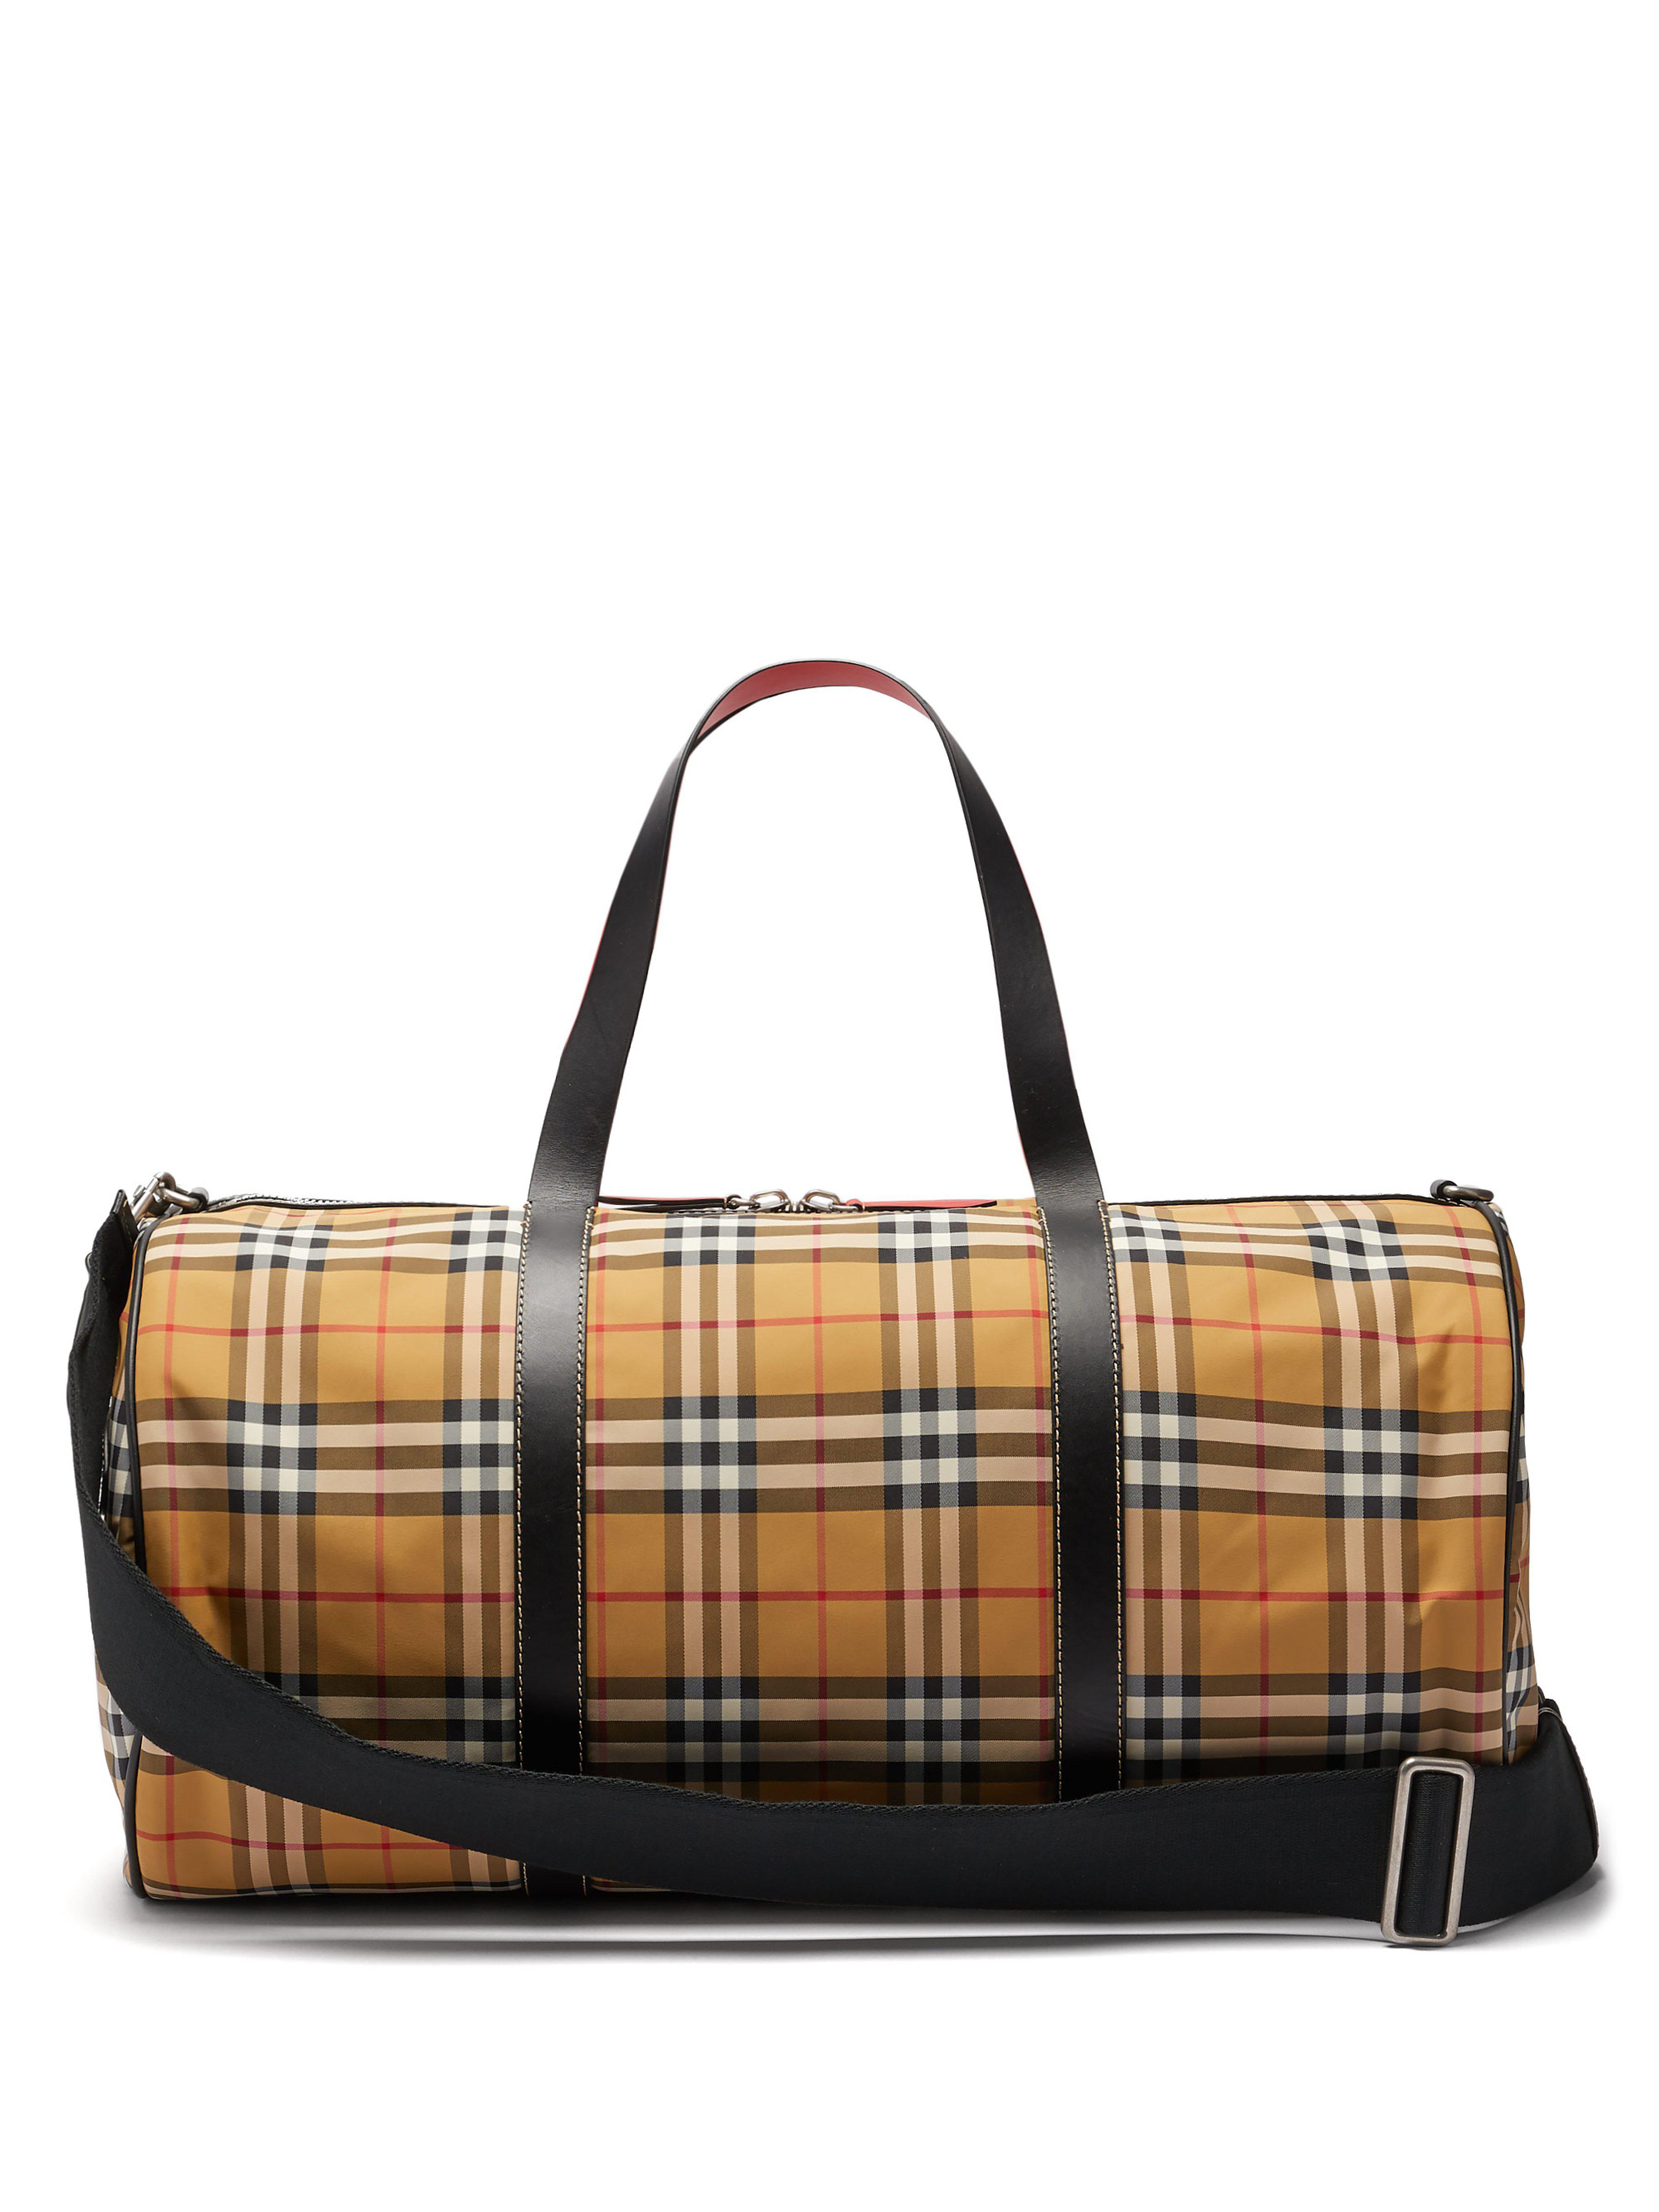 3c30bc570db3 Burberry Kennedy Vintage Check Weekend Bag in Brown - Lyst